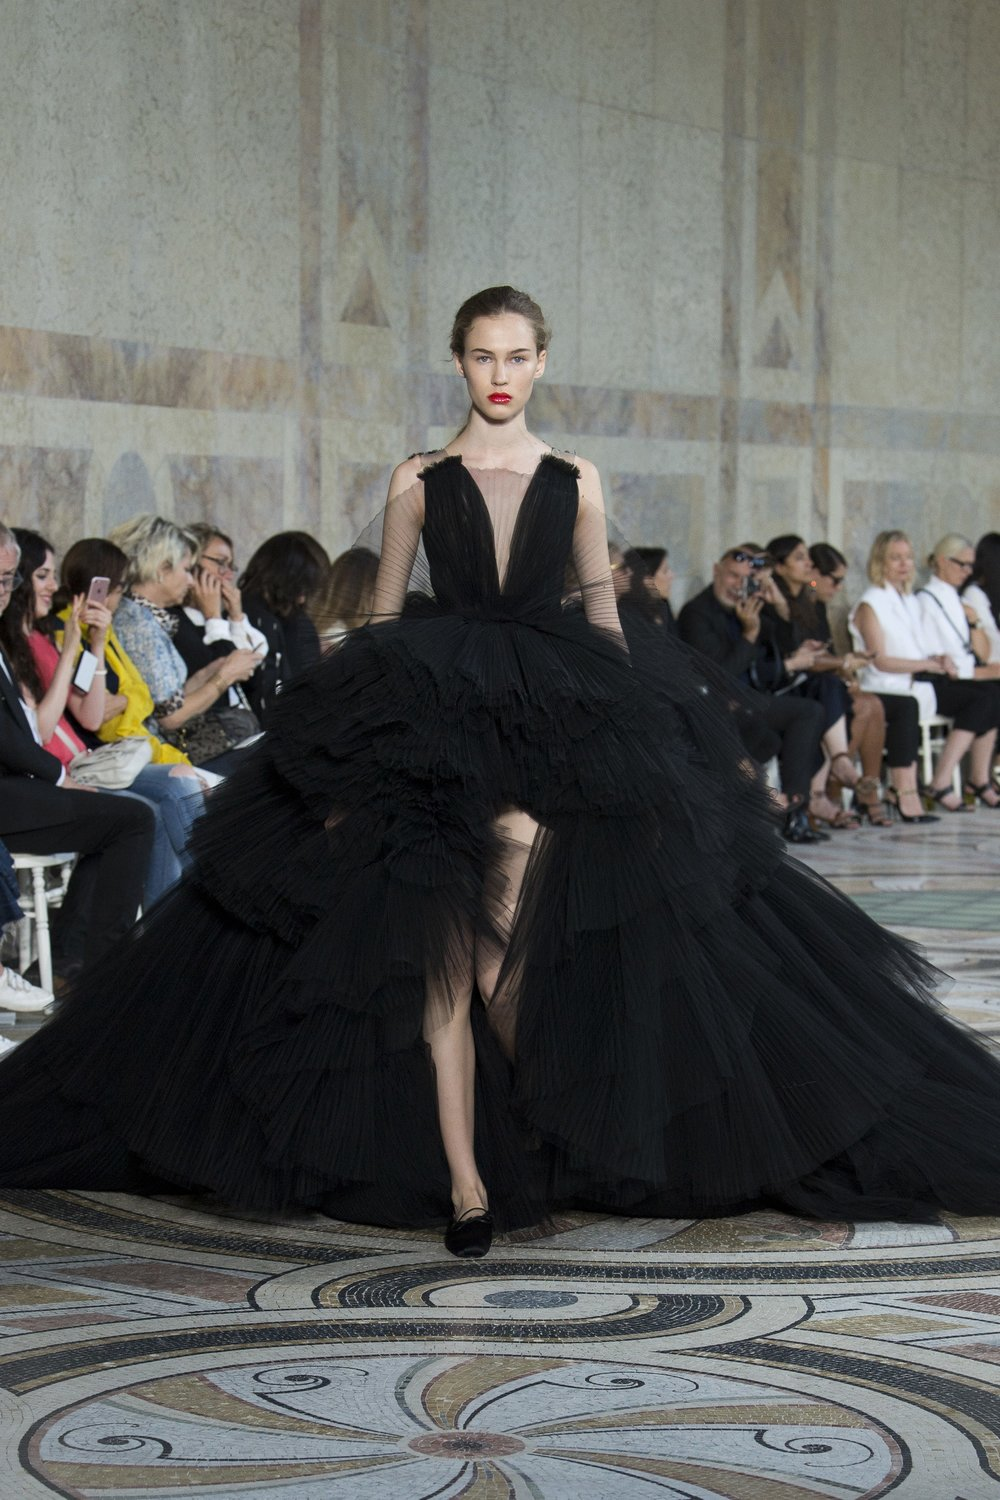 The tulle super-gown in black for those who prefer drama over sweetness.